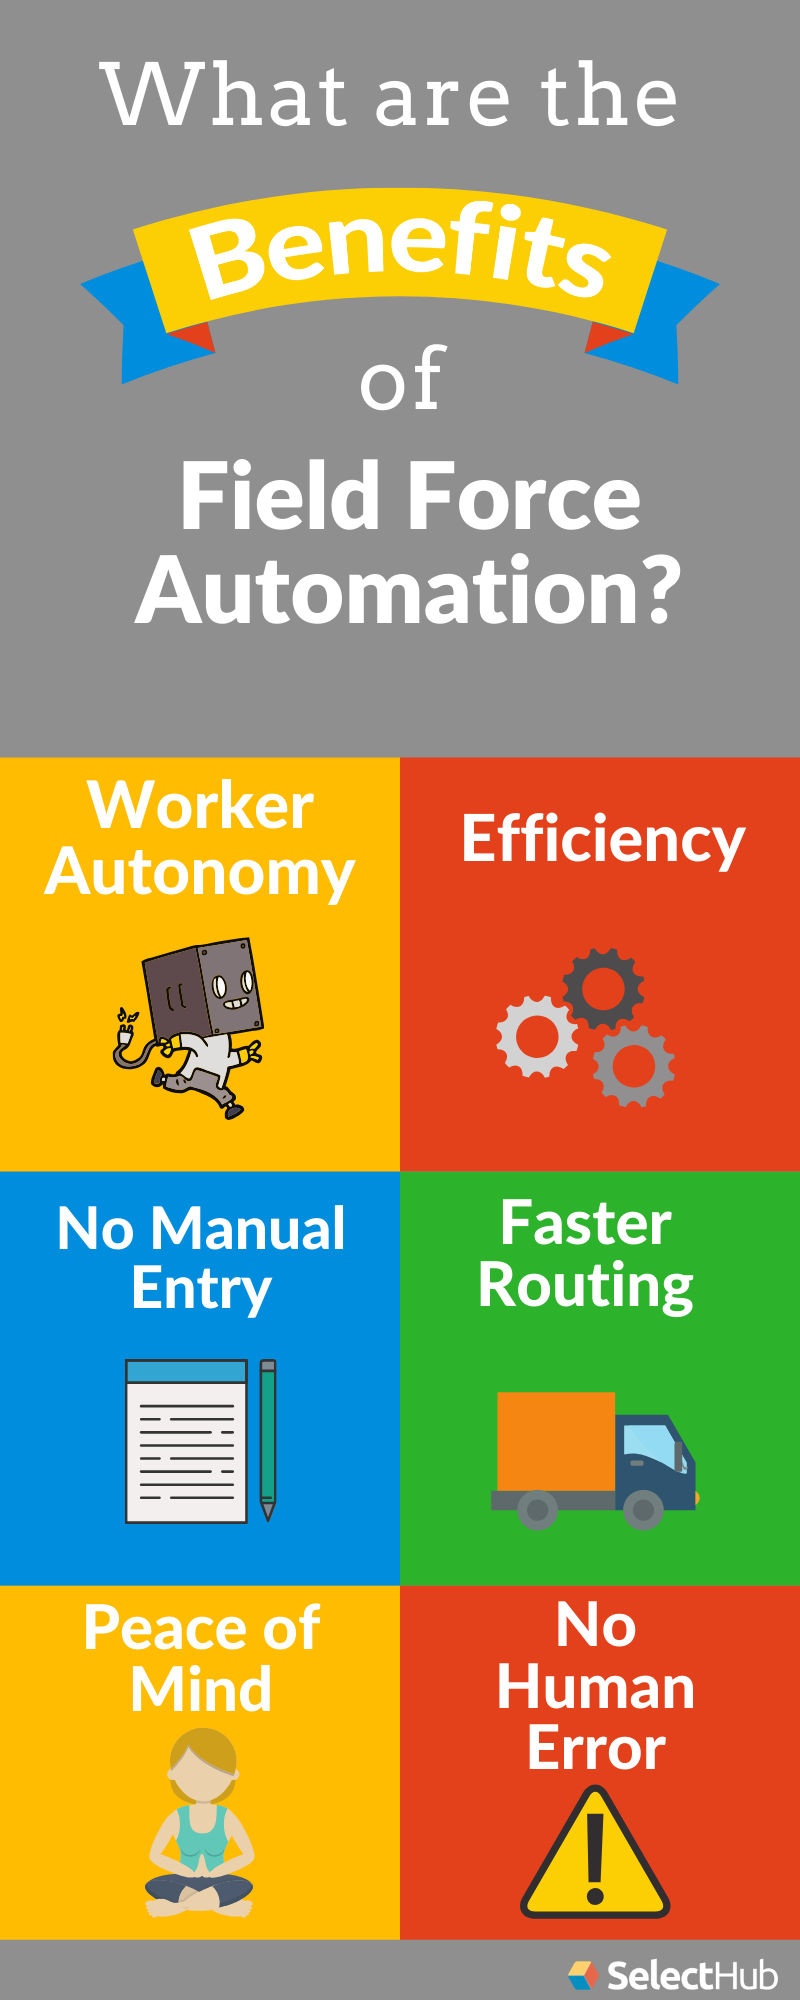 Benefits of Field Force Automation